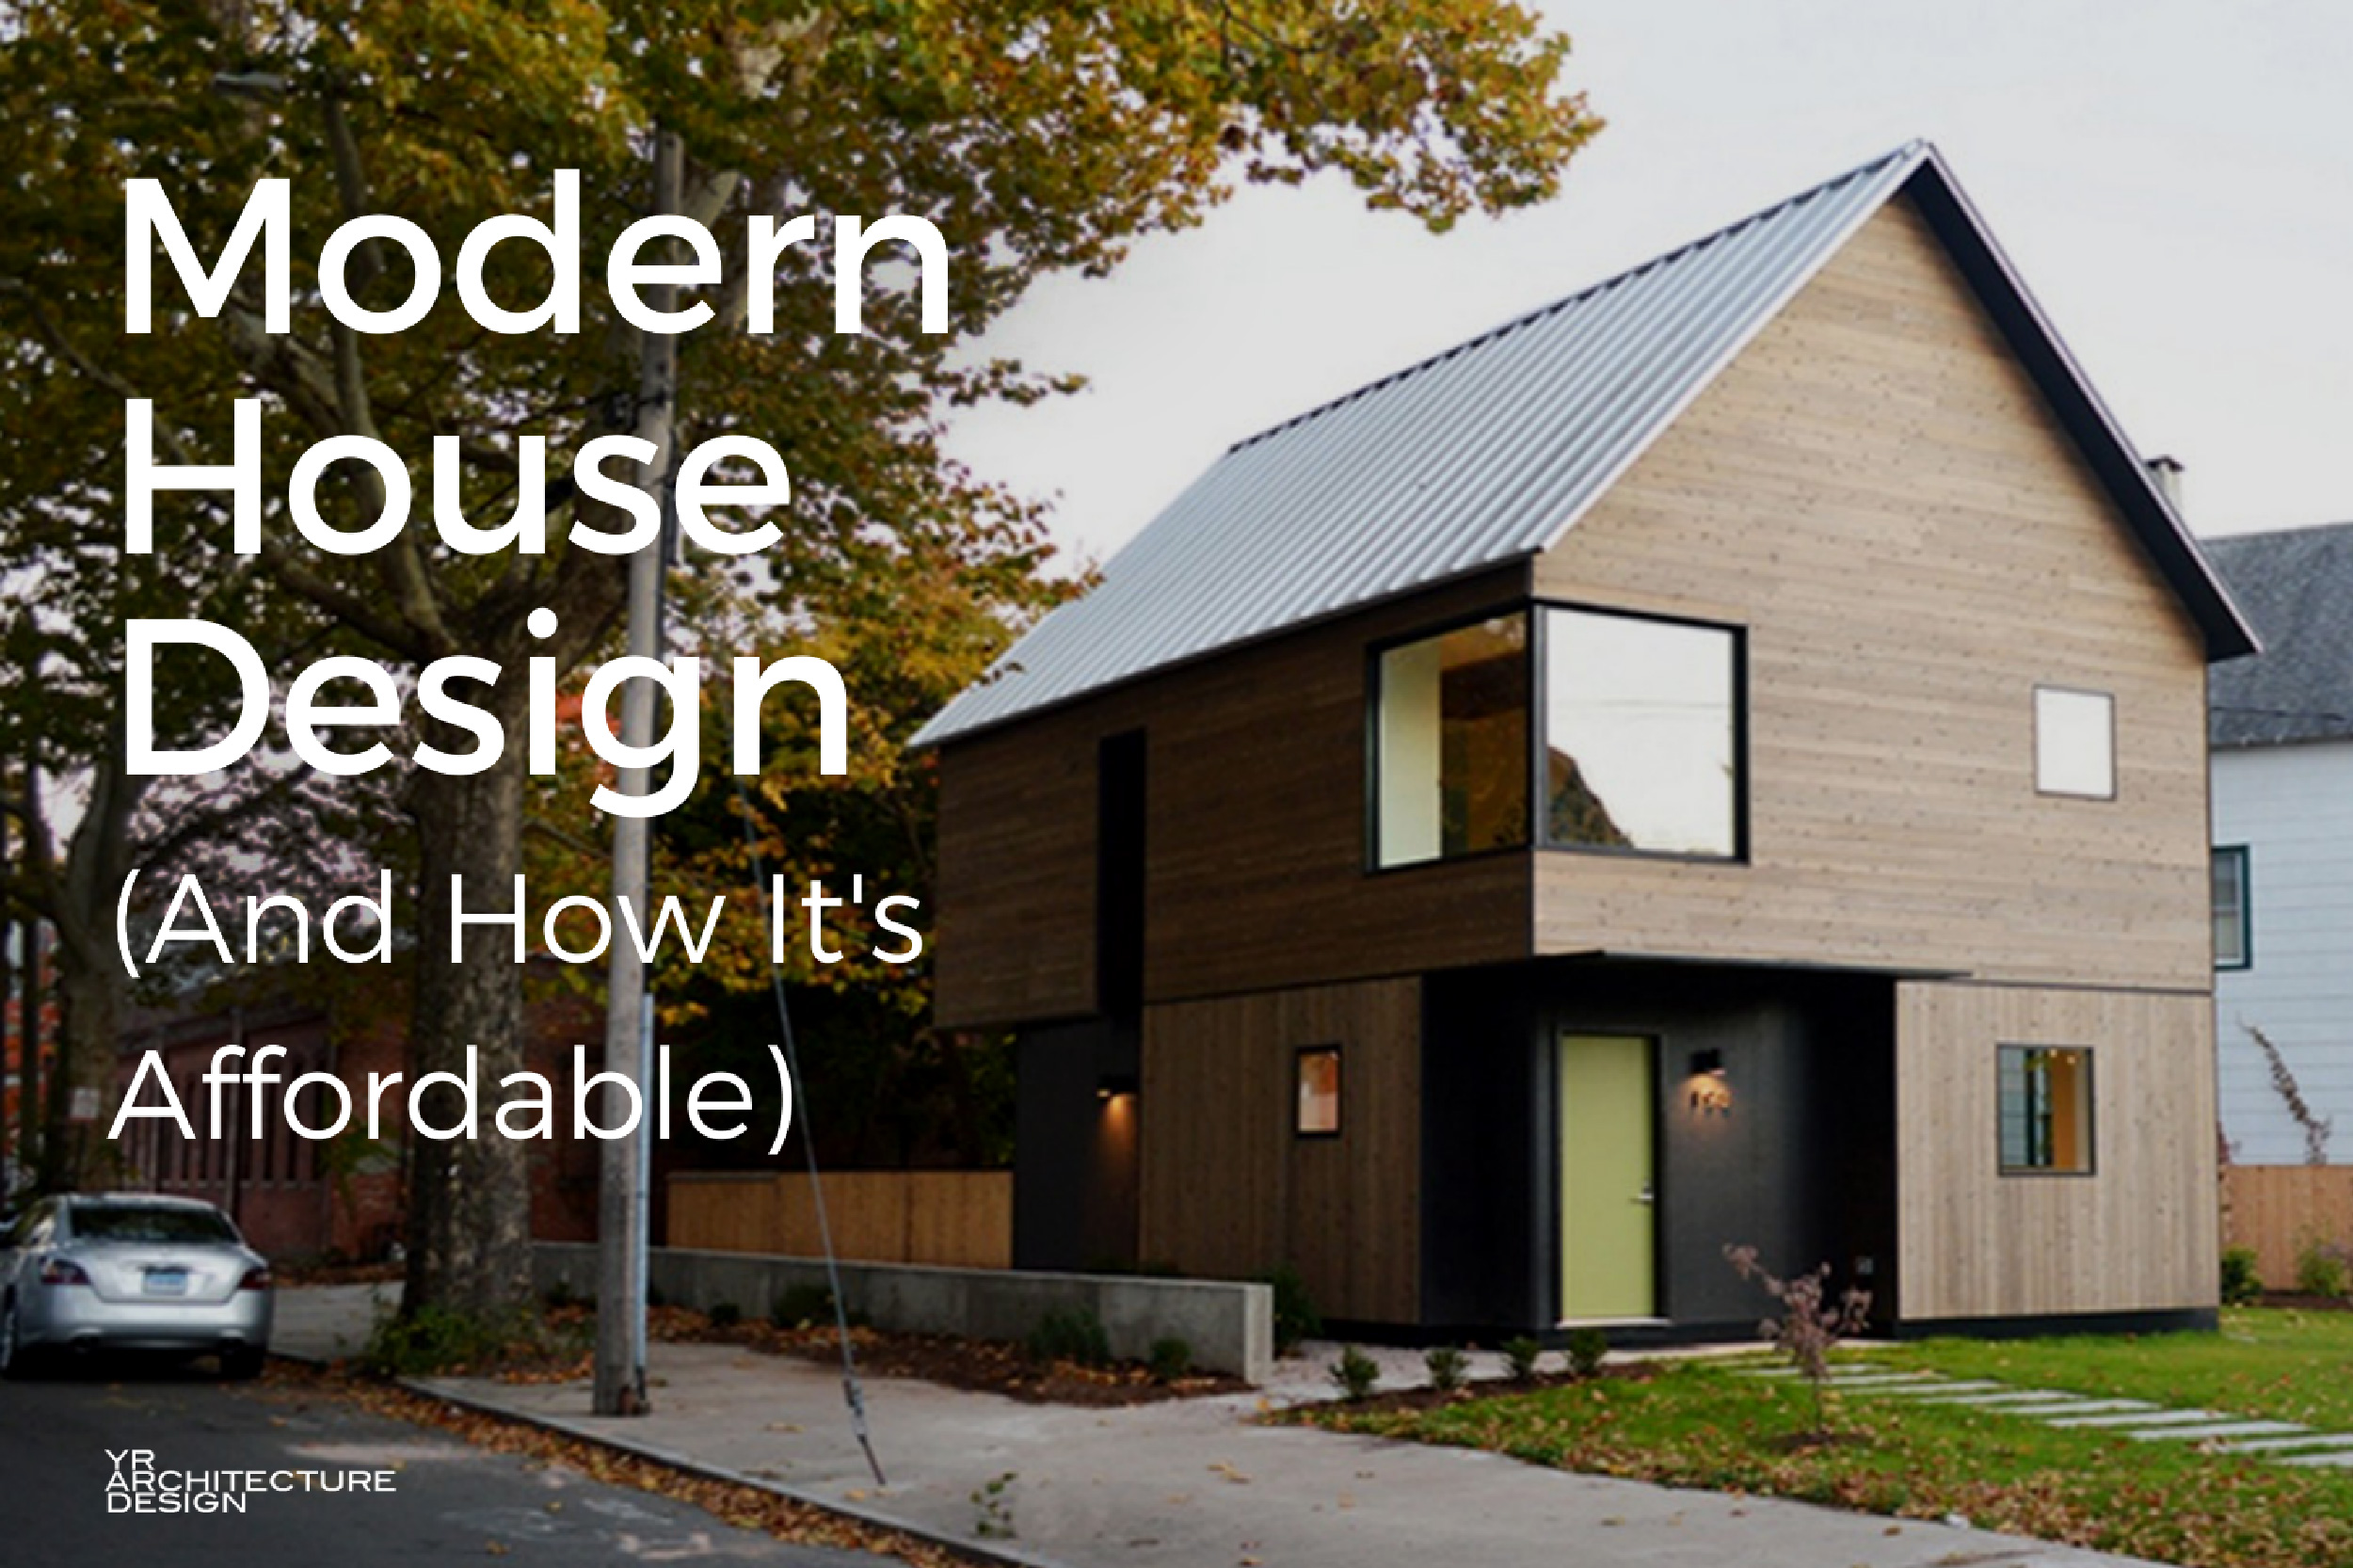 Affordable Modern House Design